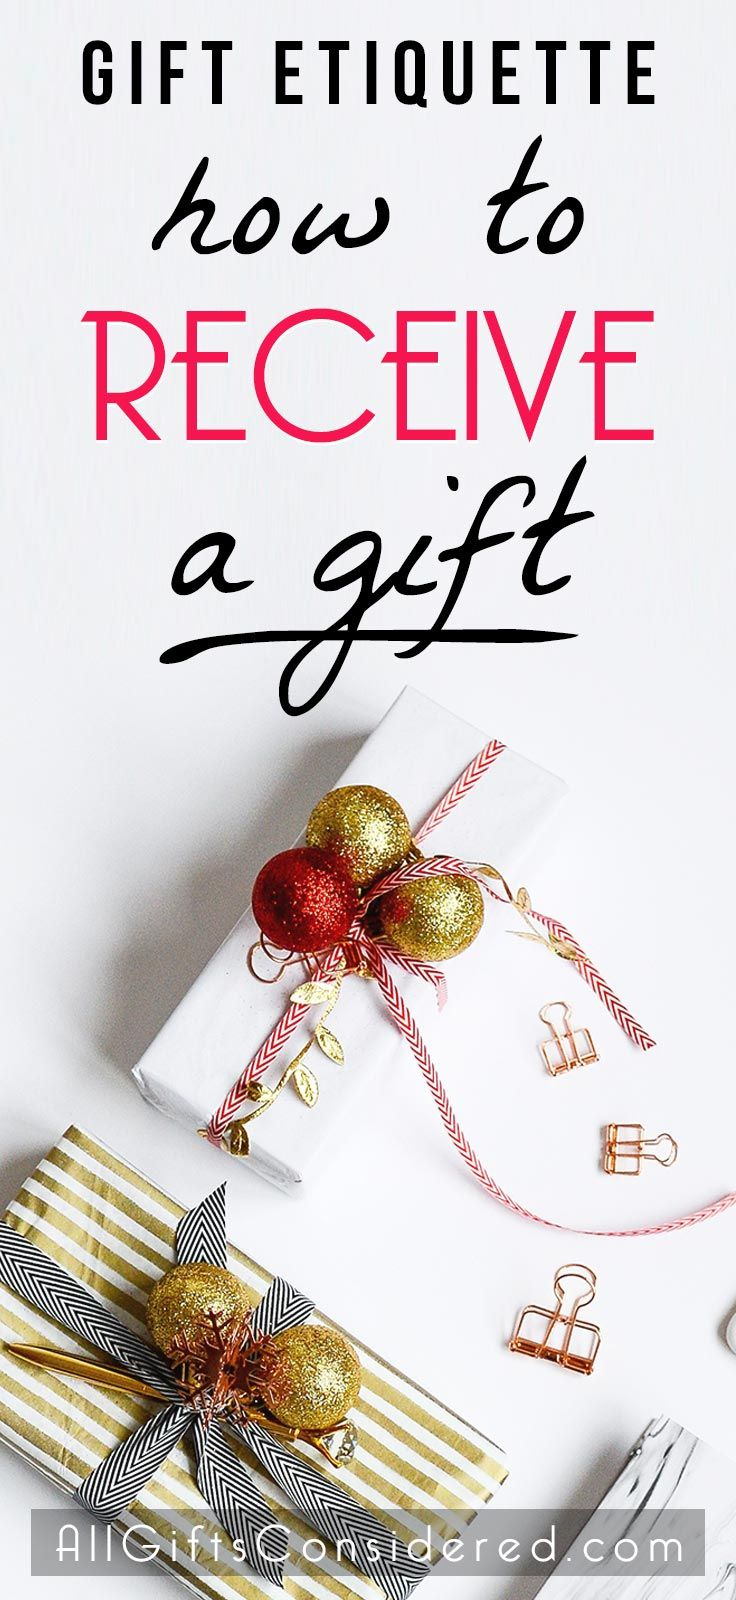 Gift Etiquette How To Receive A Gift The Right Way All Gifts Considered In 2020 Trendy Christmas Gifts Christmas Gifts For Friends All Gifts